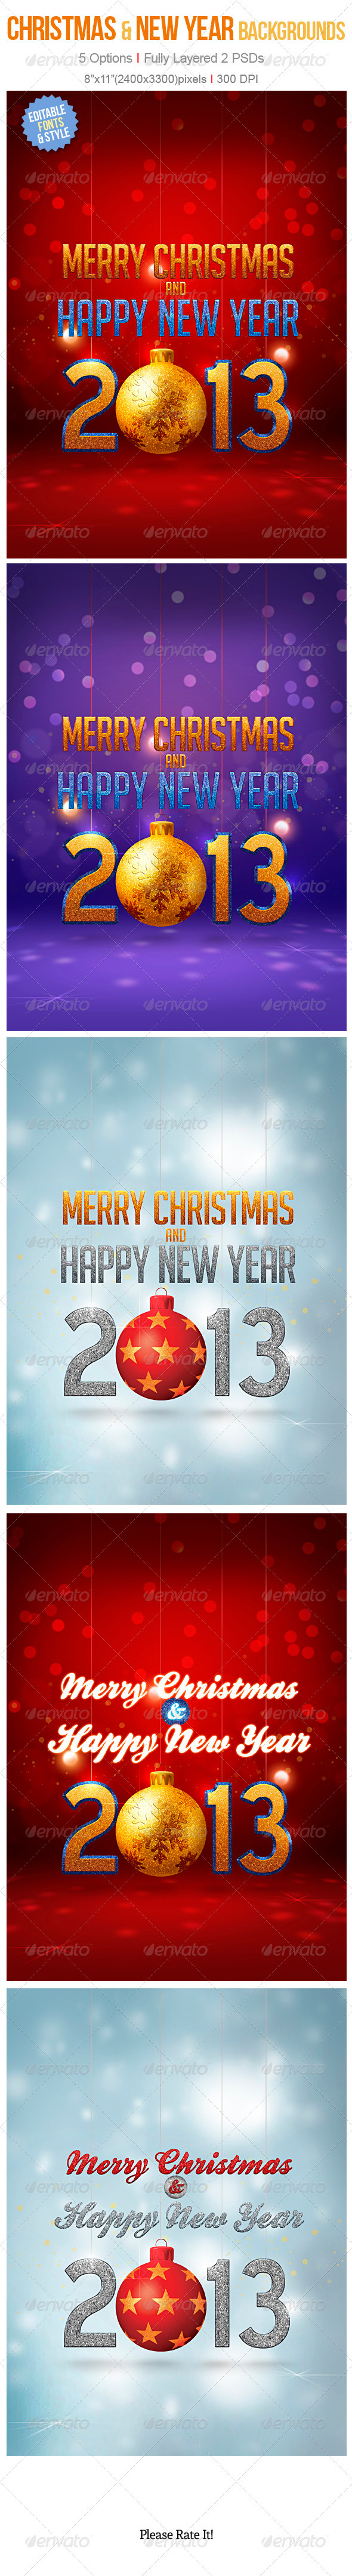 Christmas & New Year Backgrounds - Miscellaneous Backgrounds